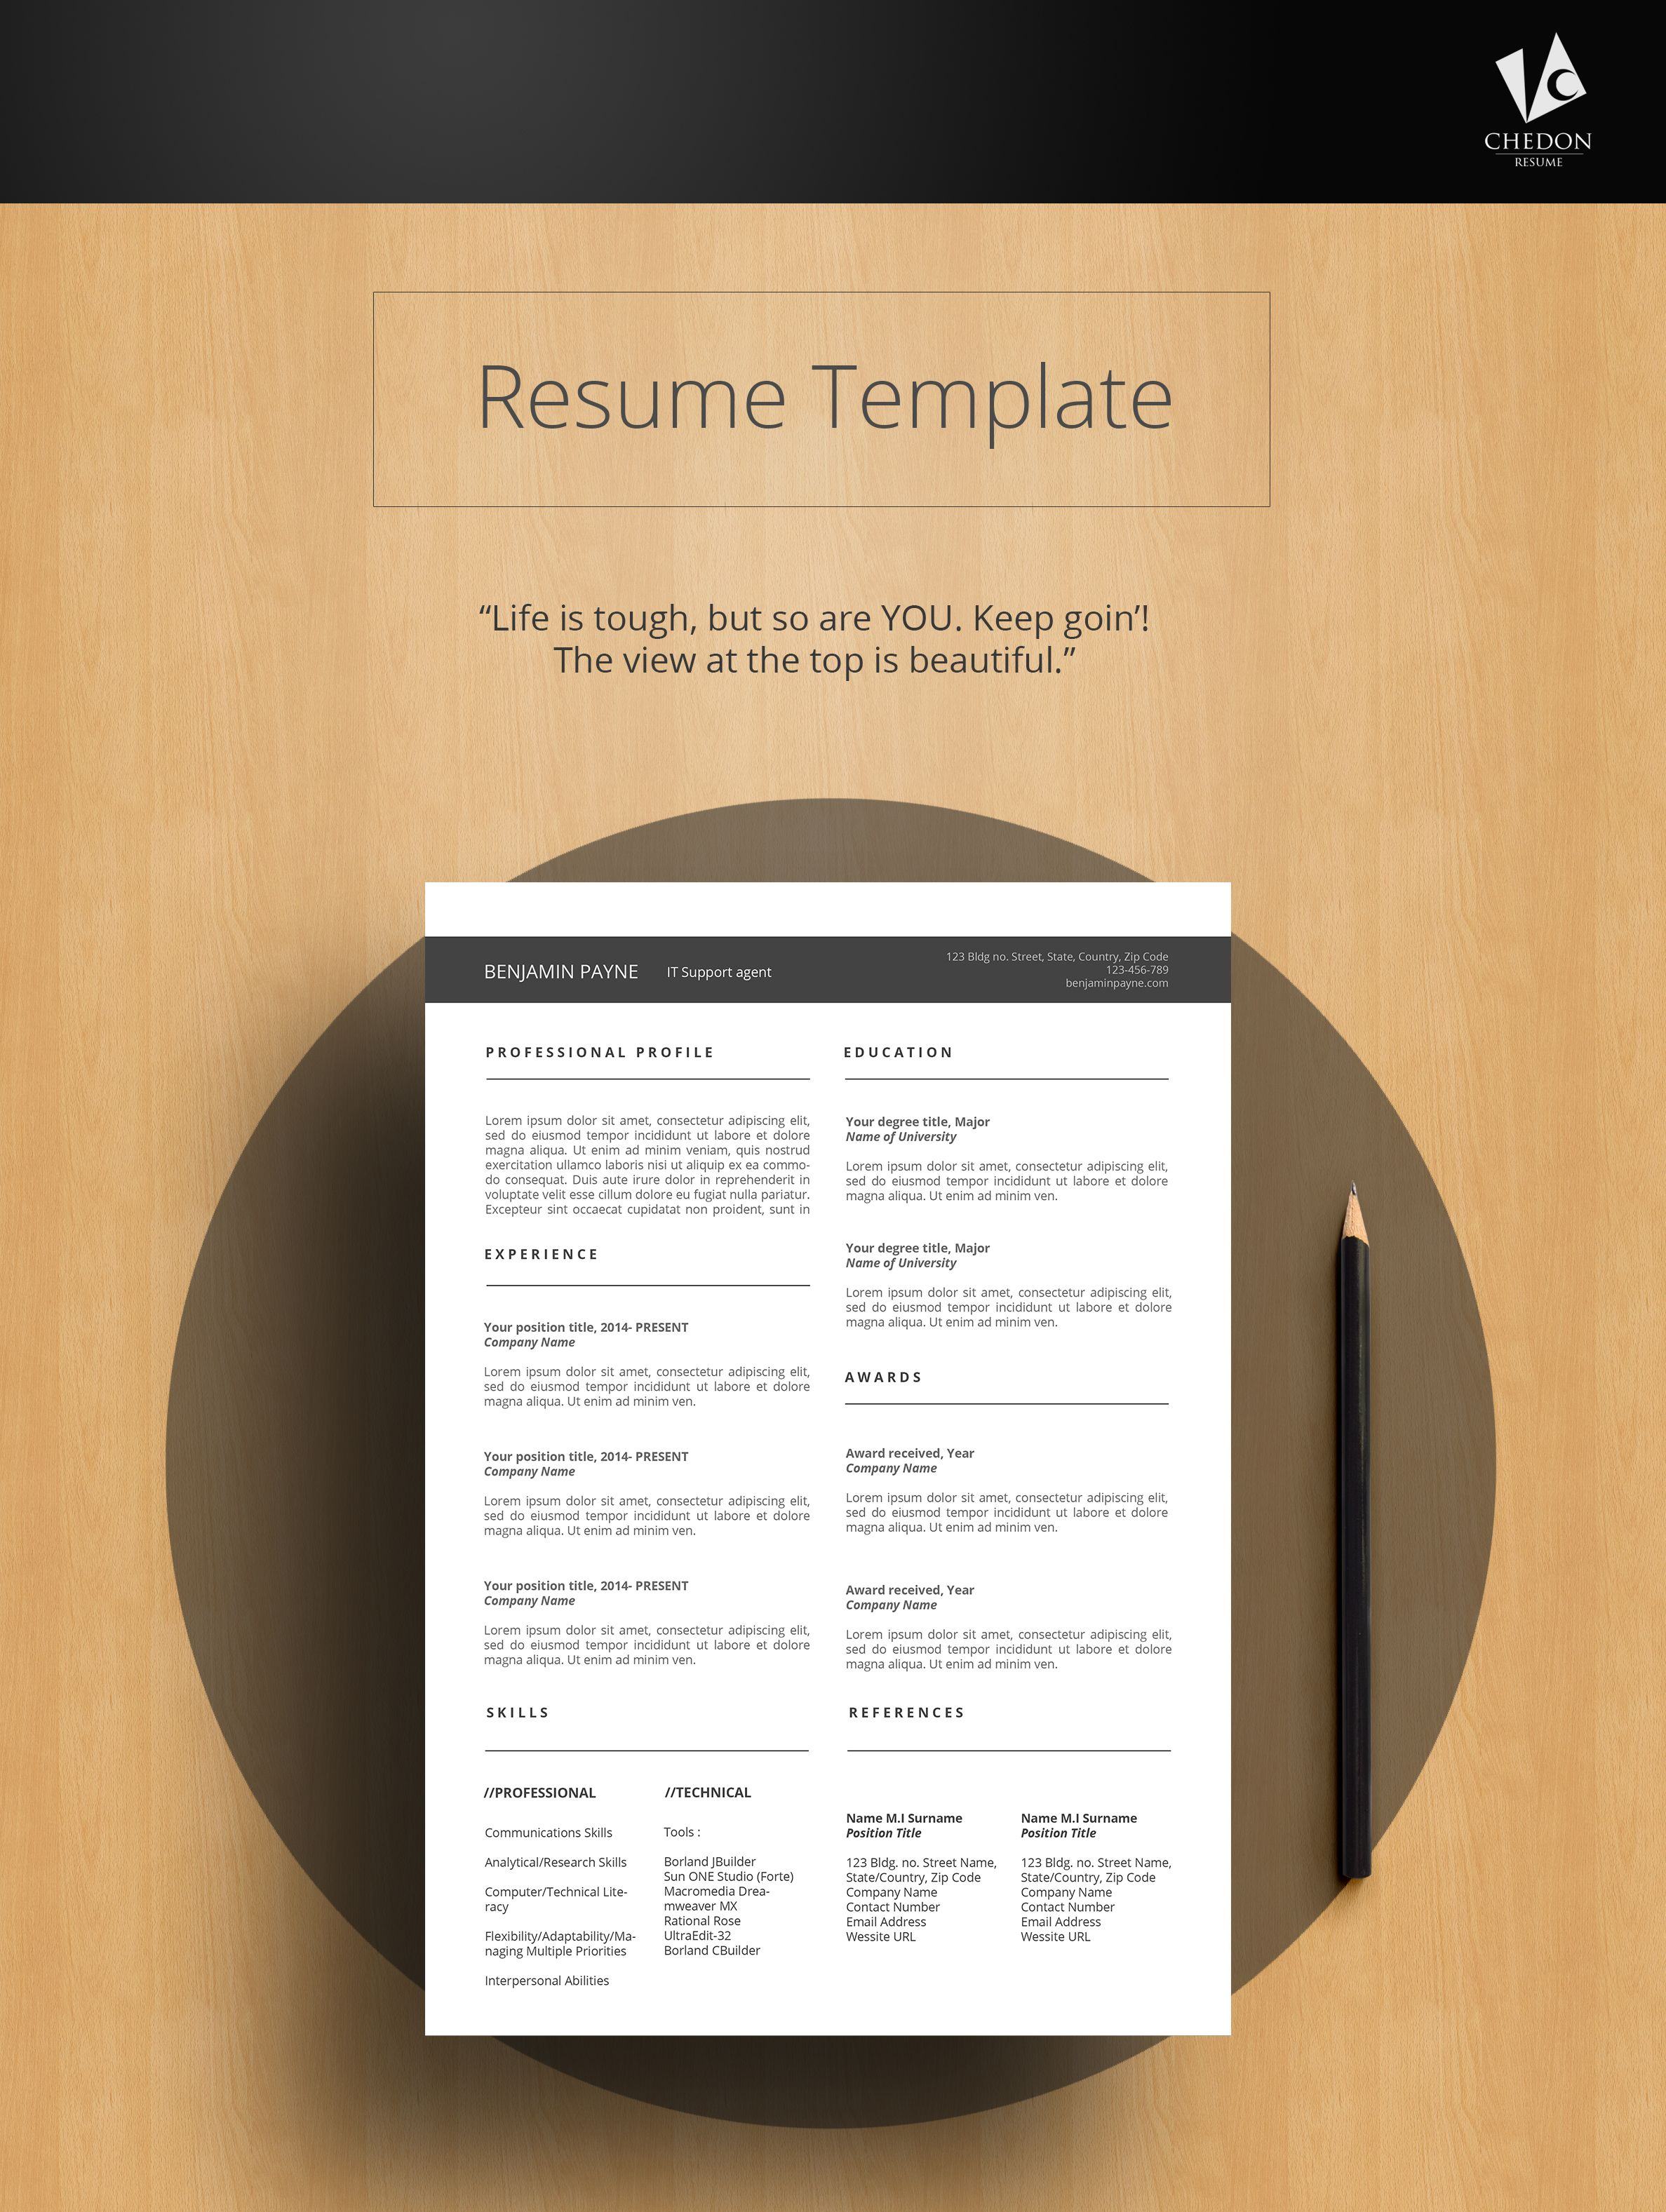 Zamtex Resume We Bring You This Simple And Clean Resume Design